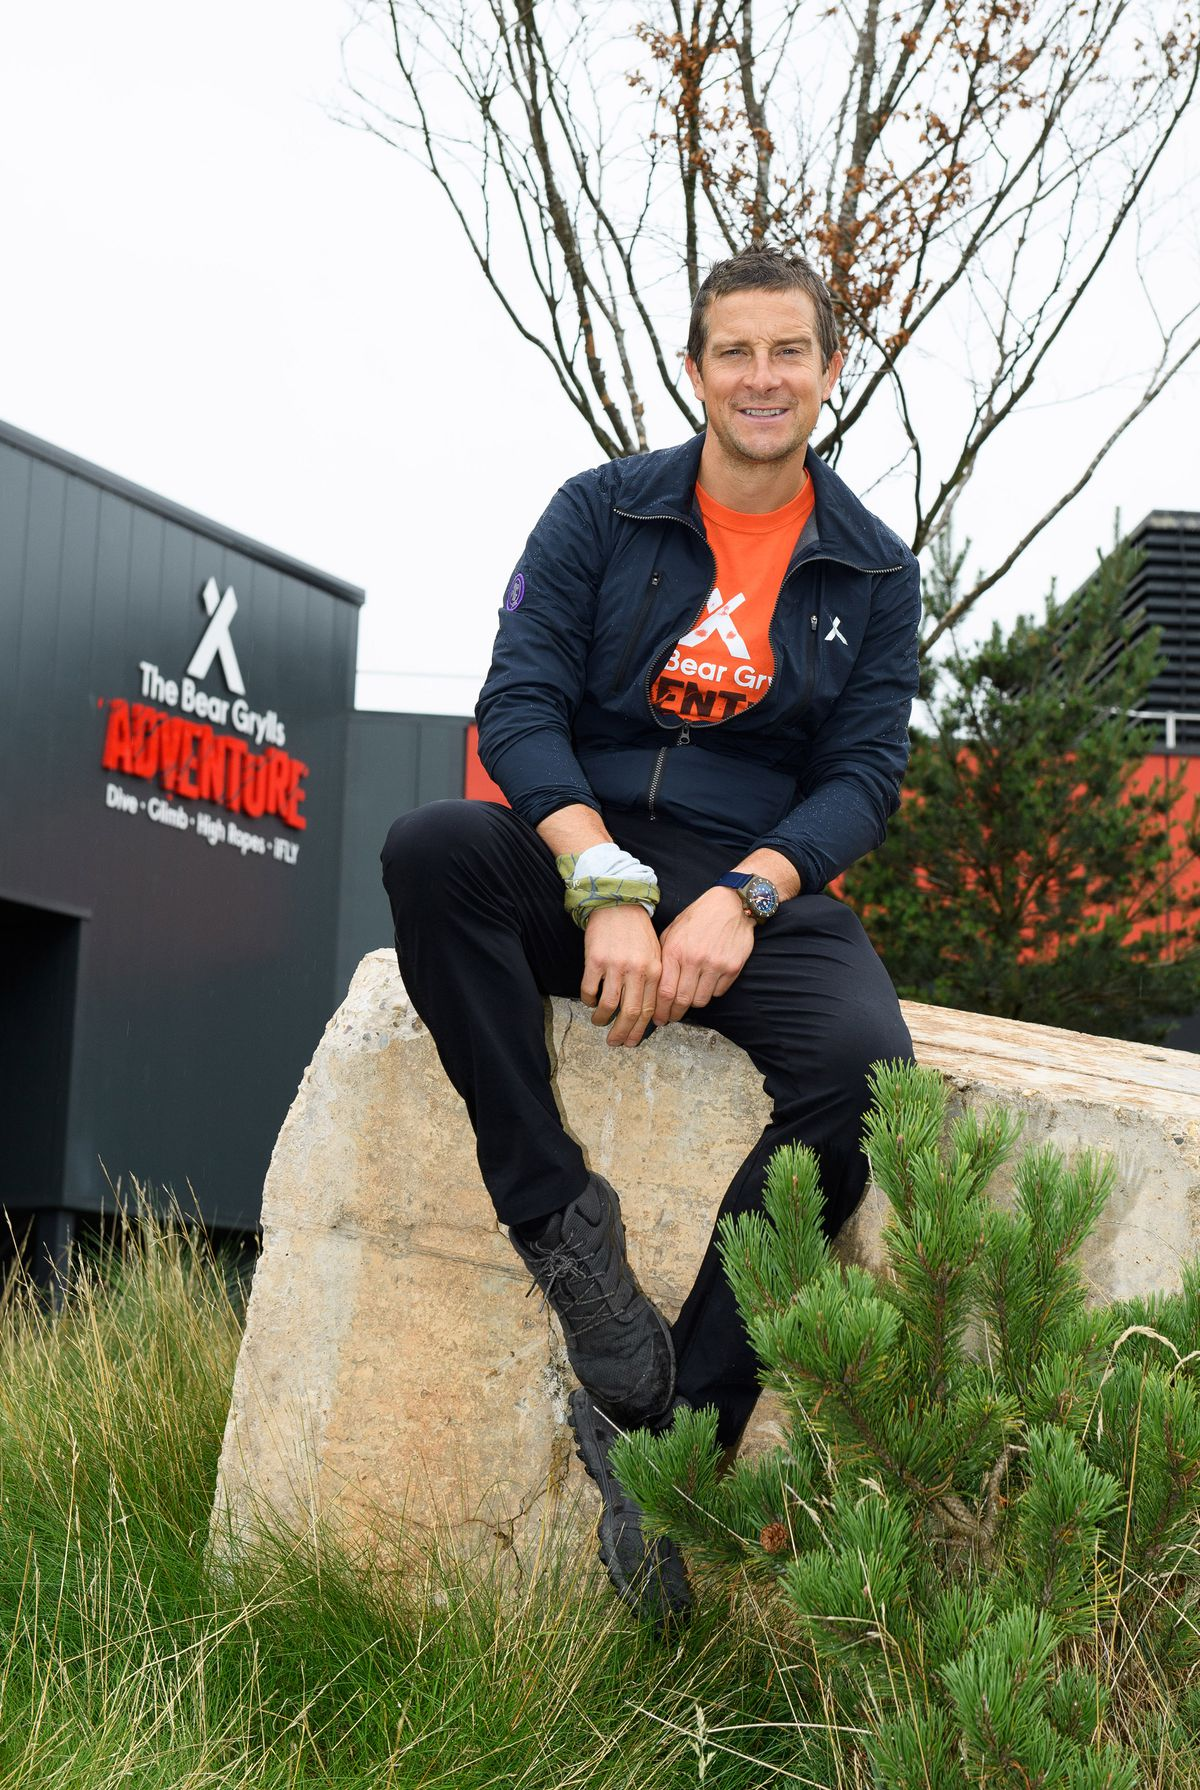 Bear Grylls outside the attraction.